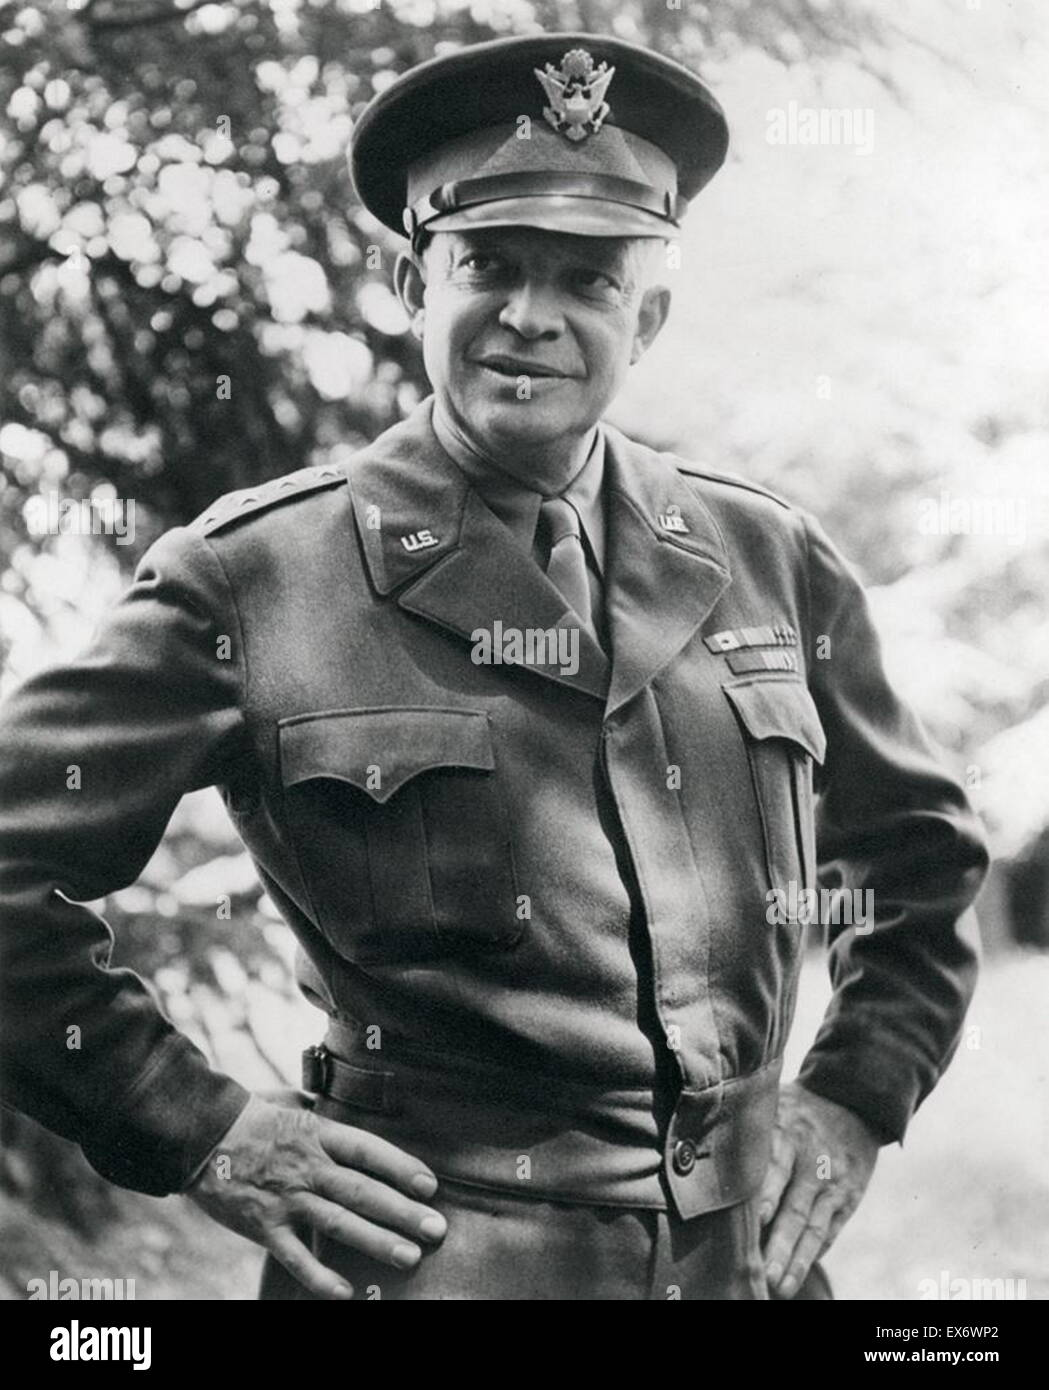 a biography of dwight david eisenhower David dwight eisenhower biography: dwight d eisenhower – in 1945 he was made us army chief of staff he became the very first supreme allied commander of the north atlantic treaty organization (nato) in 1951.